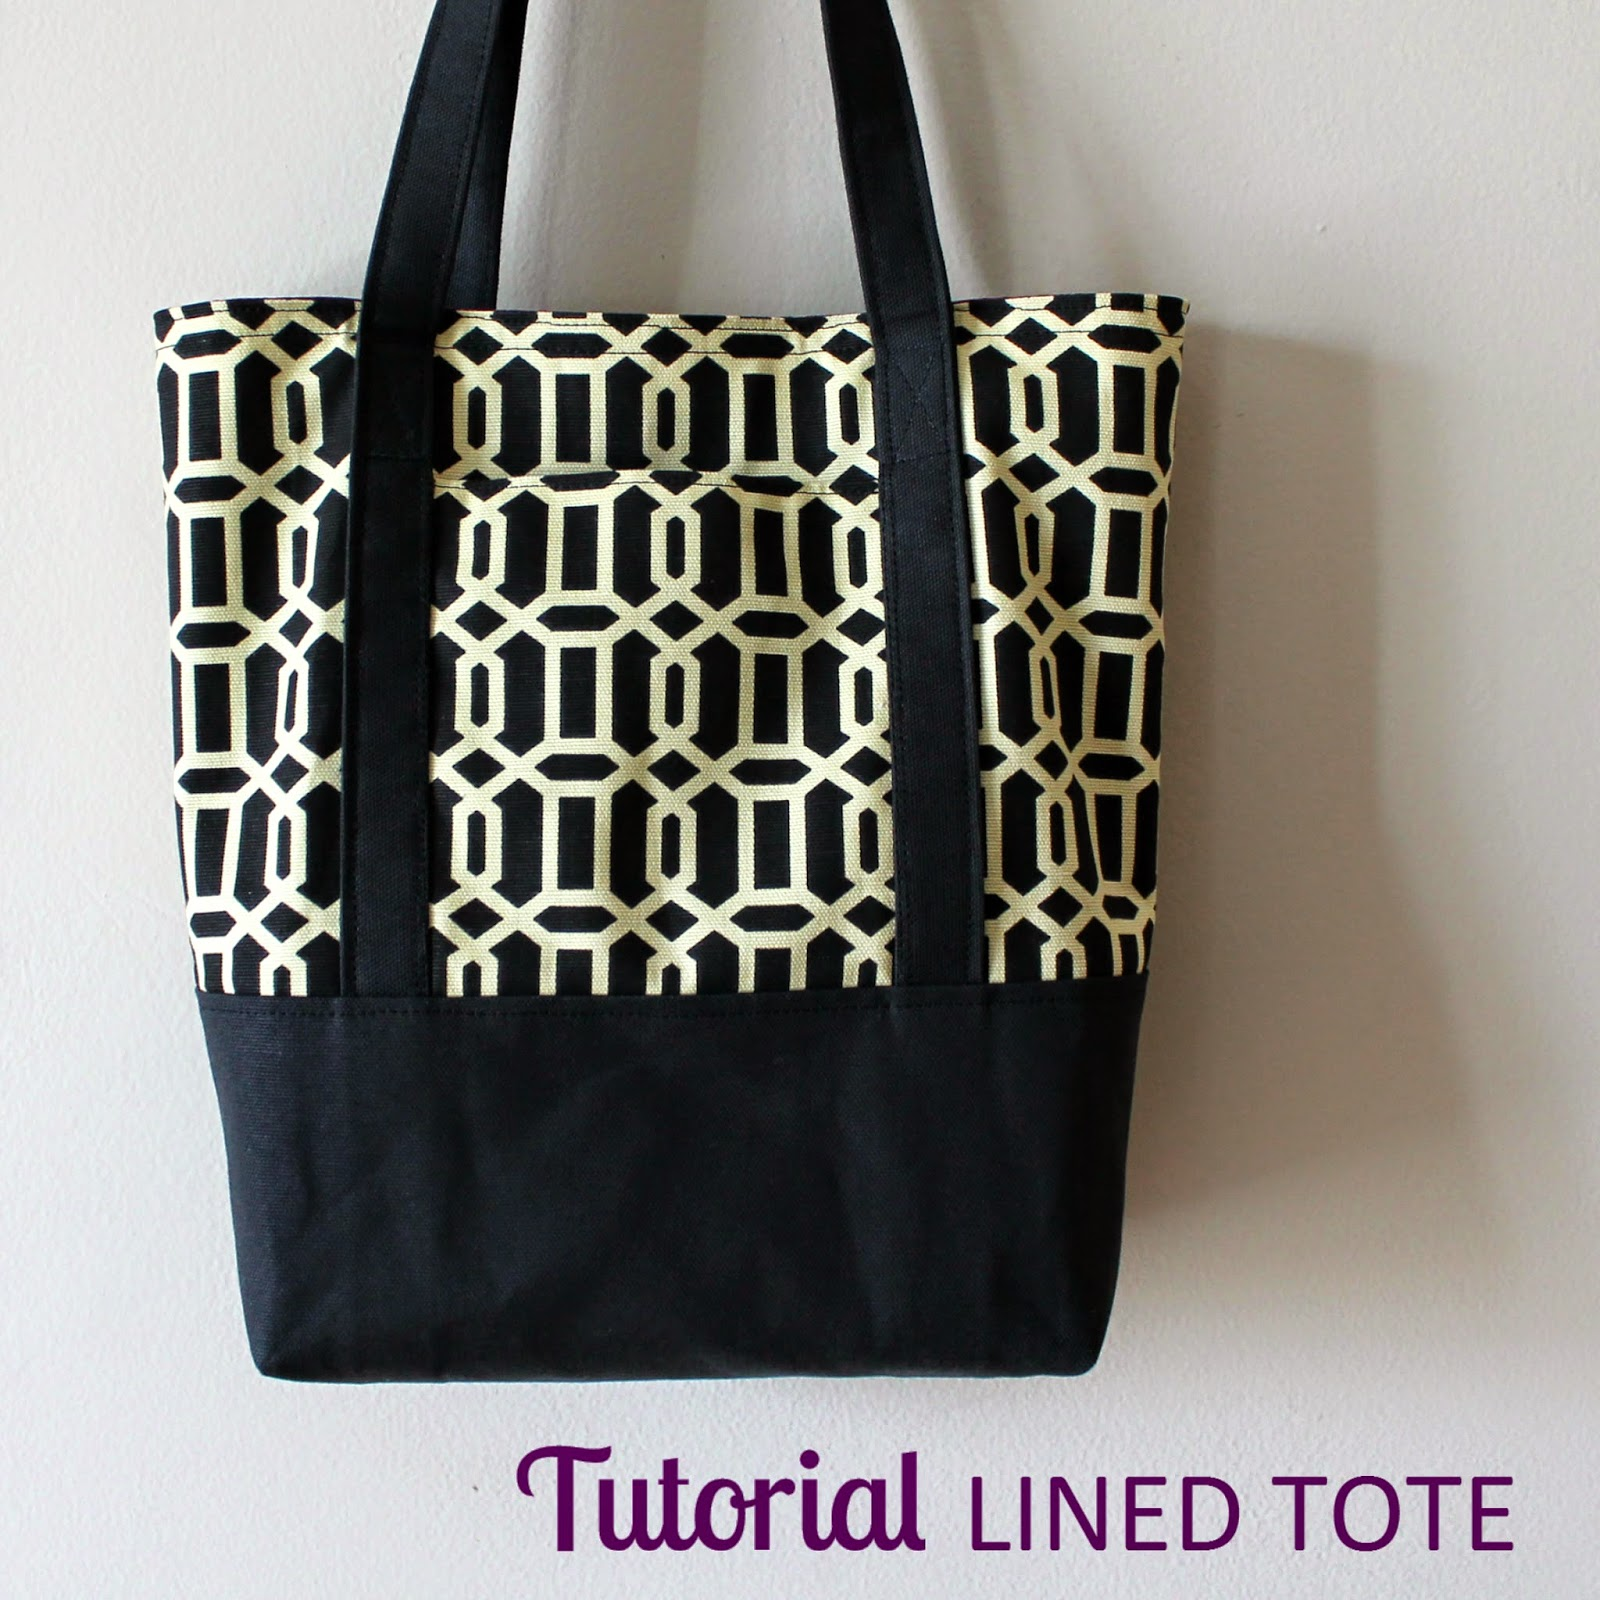 Tutorial: Lined Tote Bag | Step by step directions to sew a lined canvas tote with an outer pocket and a reinforced bottom, including cutting dimentsions. | The Inspired Wren